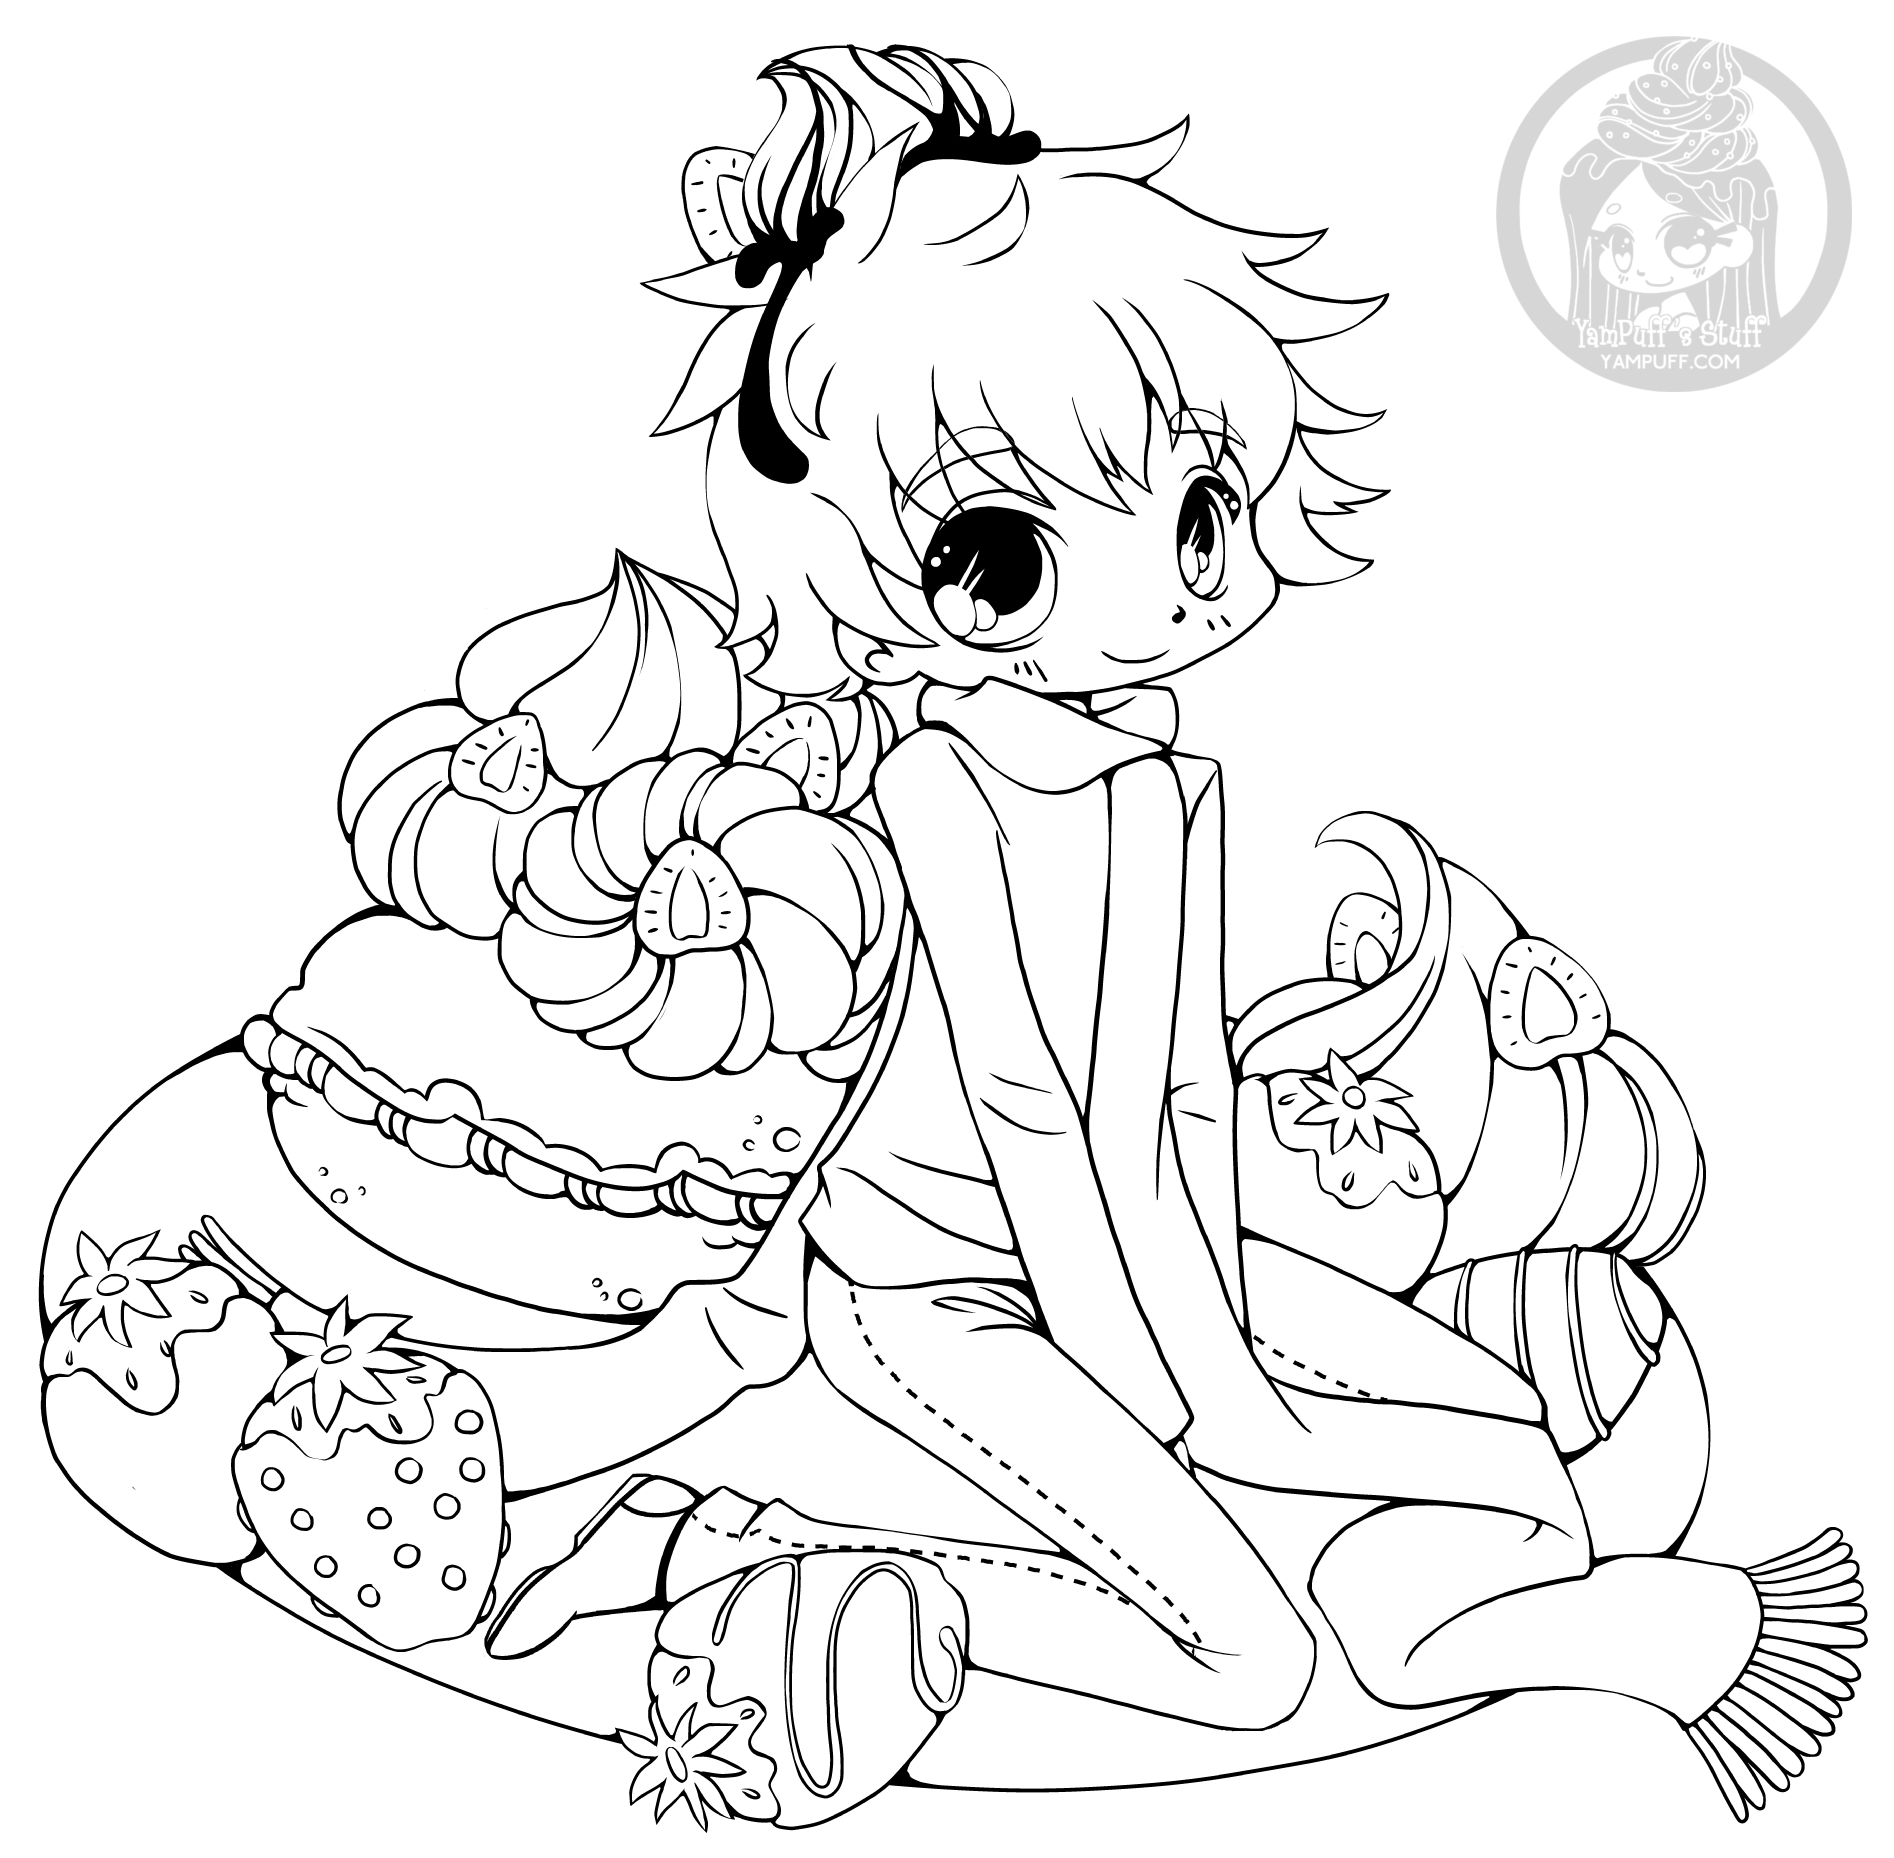 chibi boy coloring pages chibi boy lineart by mahwey on deviantart coloring chibi pages boy